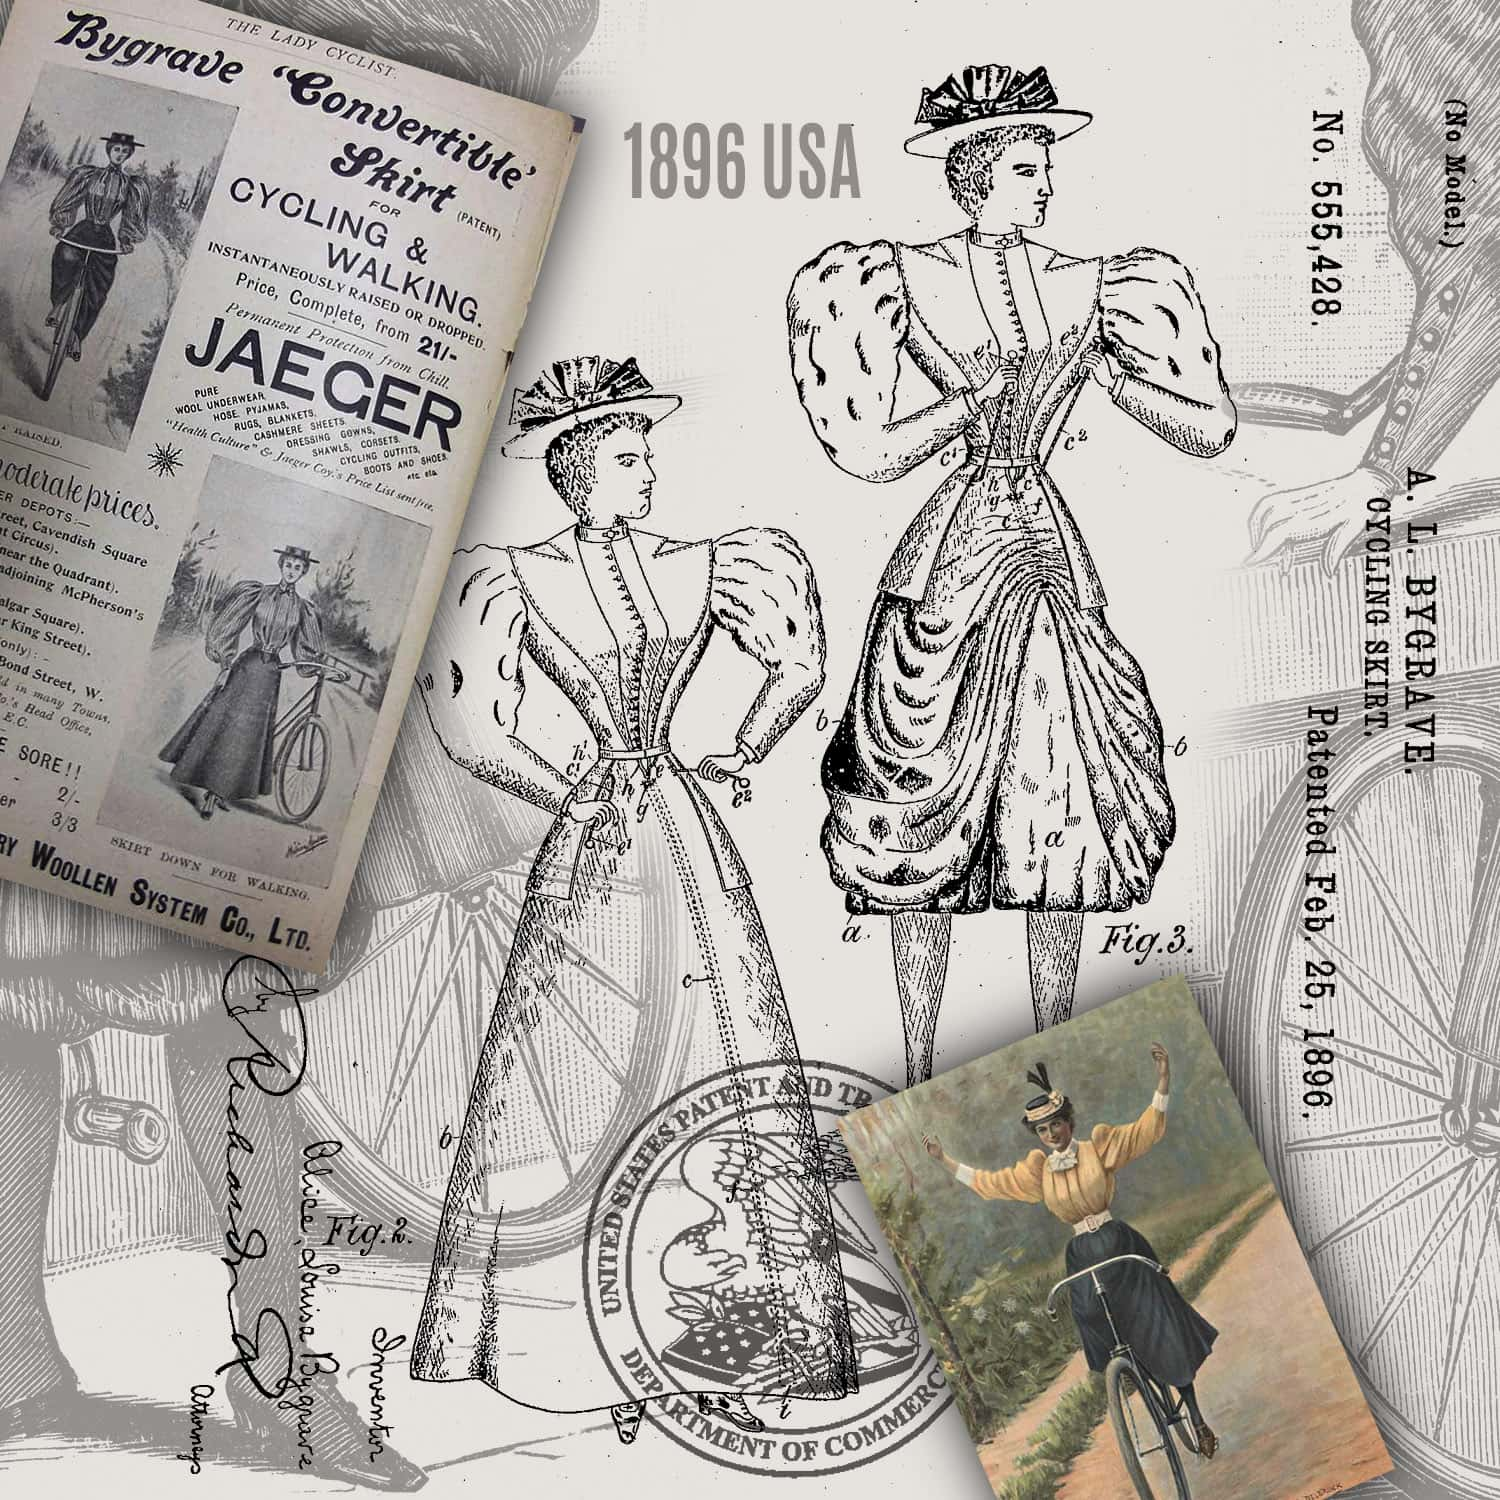 Alice-Louisa Bygrave 1896 skirt for cyclists invention - USPTO archives